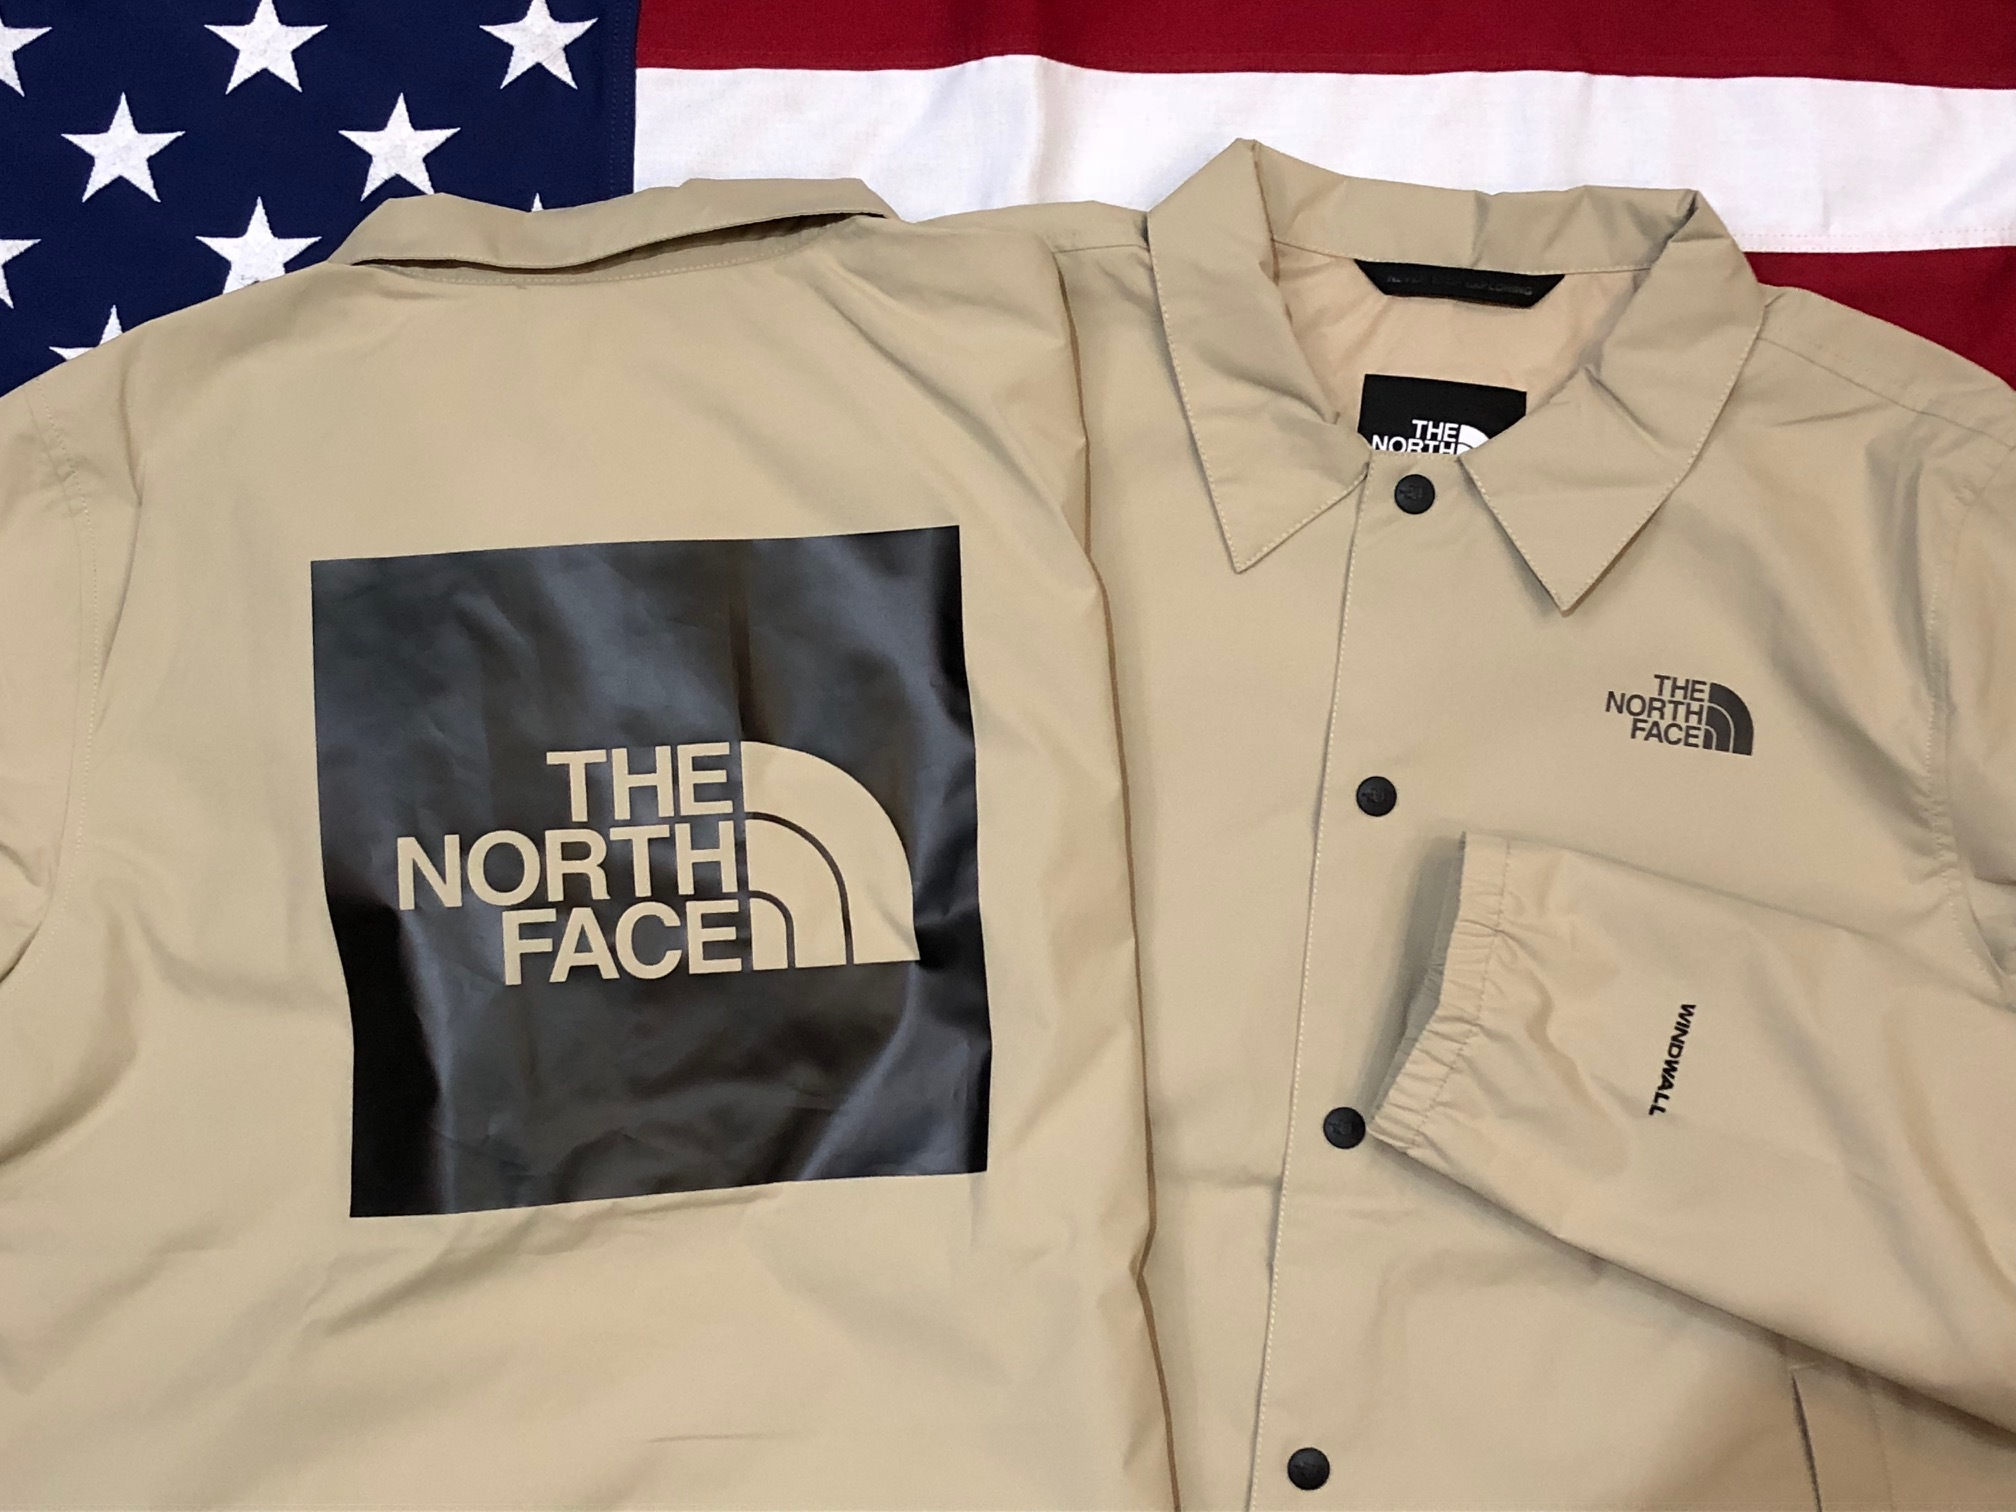 THE NORTH FACE & CARHARTT大量入荷!!!_a0221253_21073137.jpg